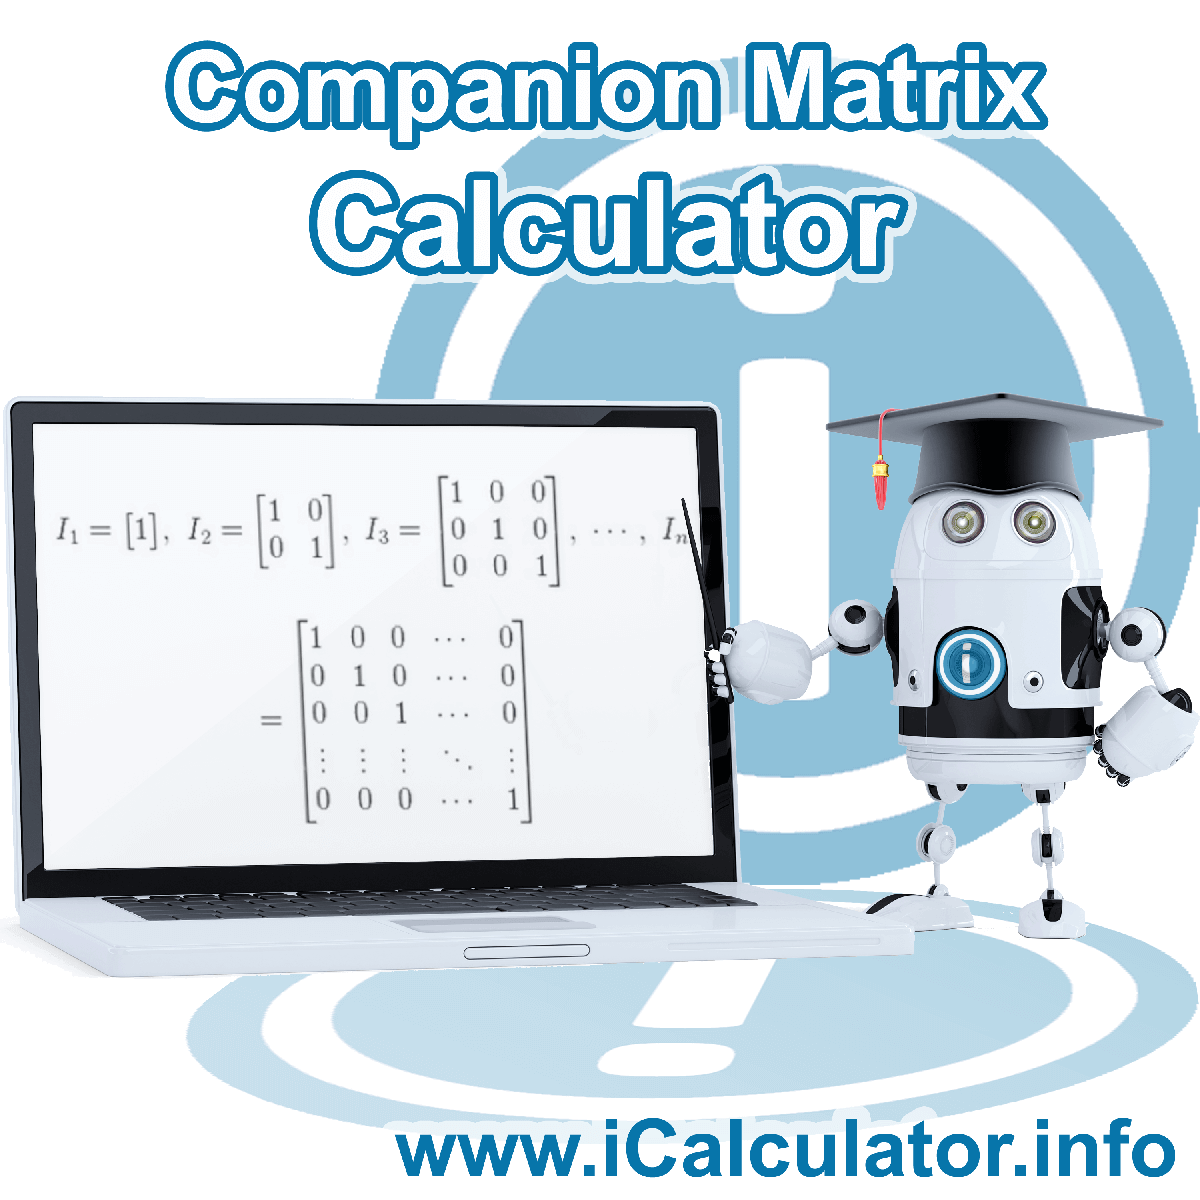 Companion Matrix Calculator. This image shows the properties and Companion Matrix formula for the Companion Matrix Calculator